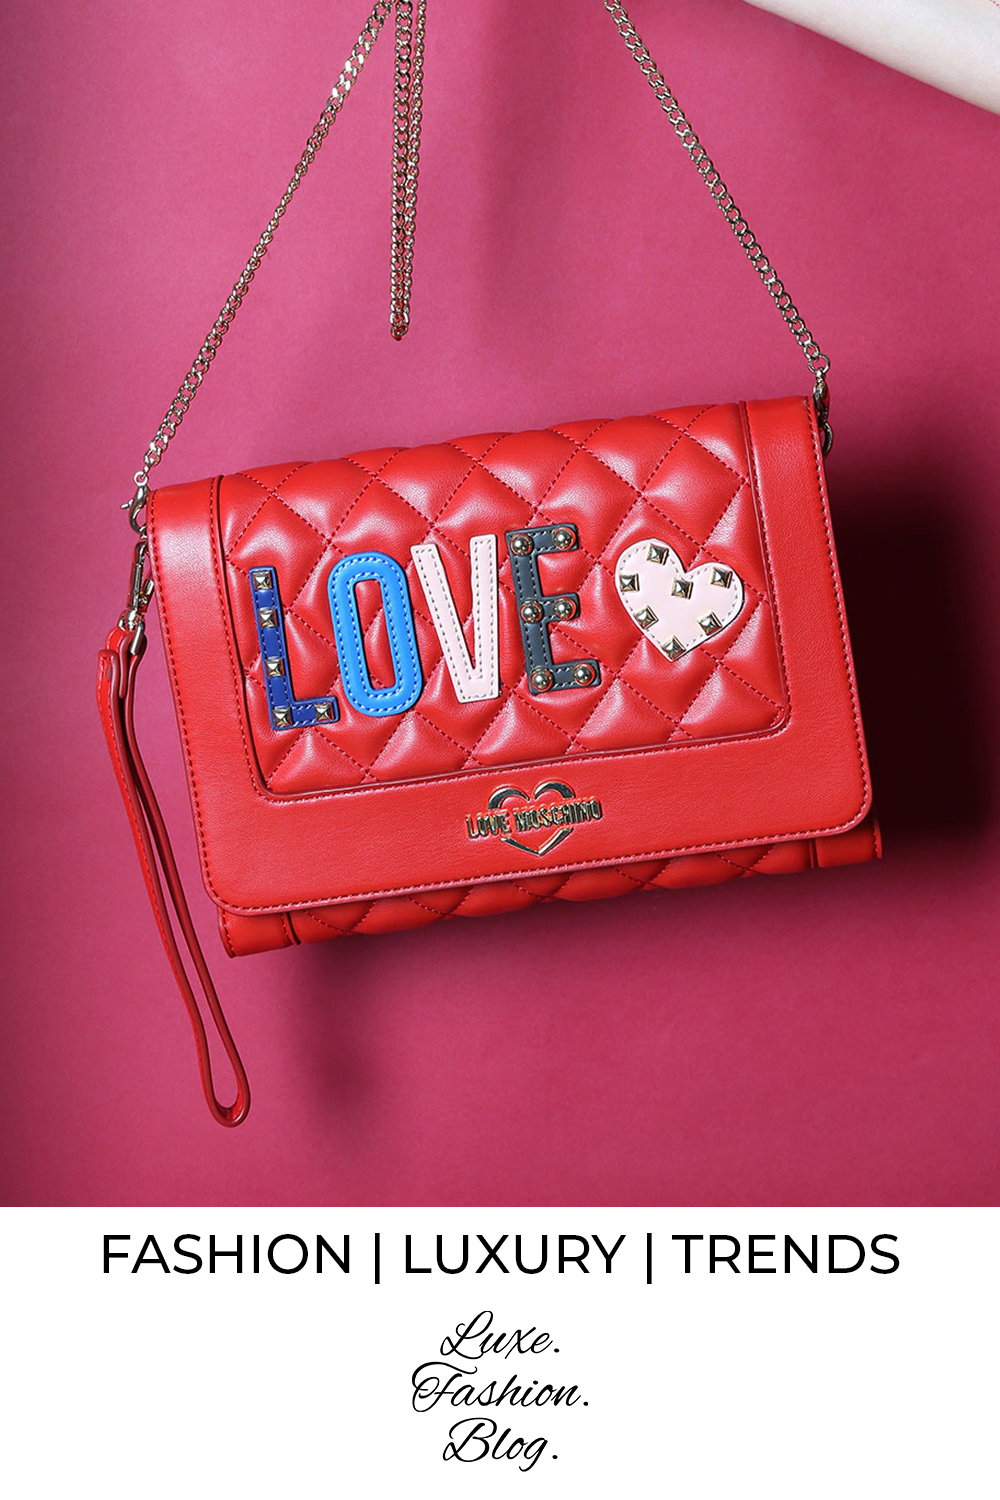 Buy Love Moschino Bag | Red Bag | Outlet Prices |